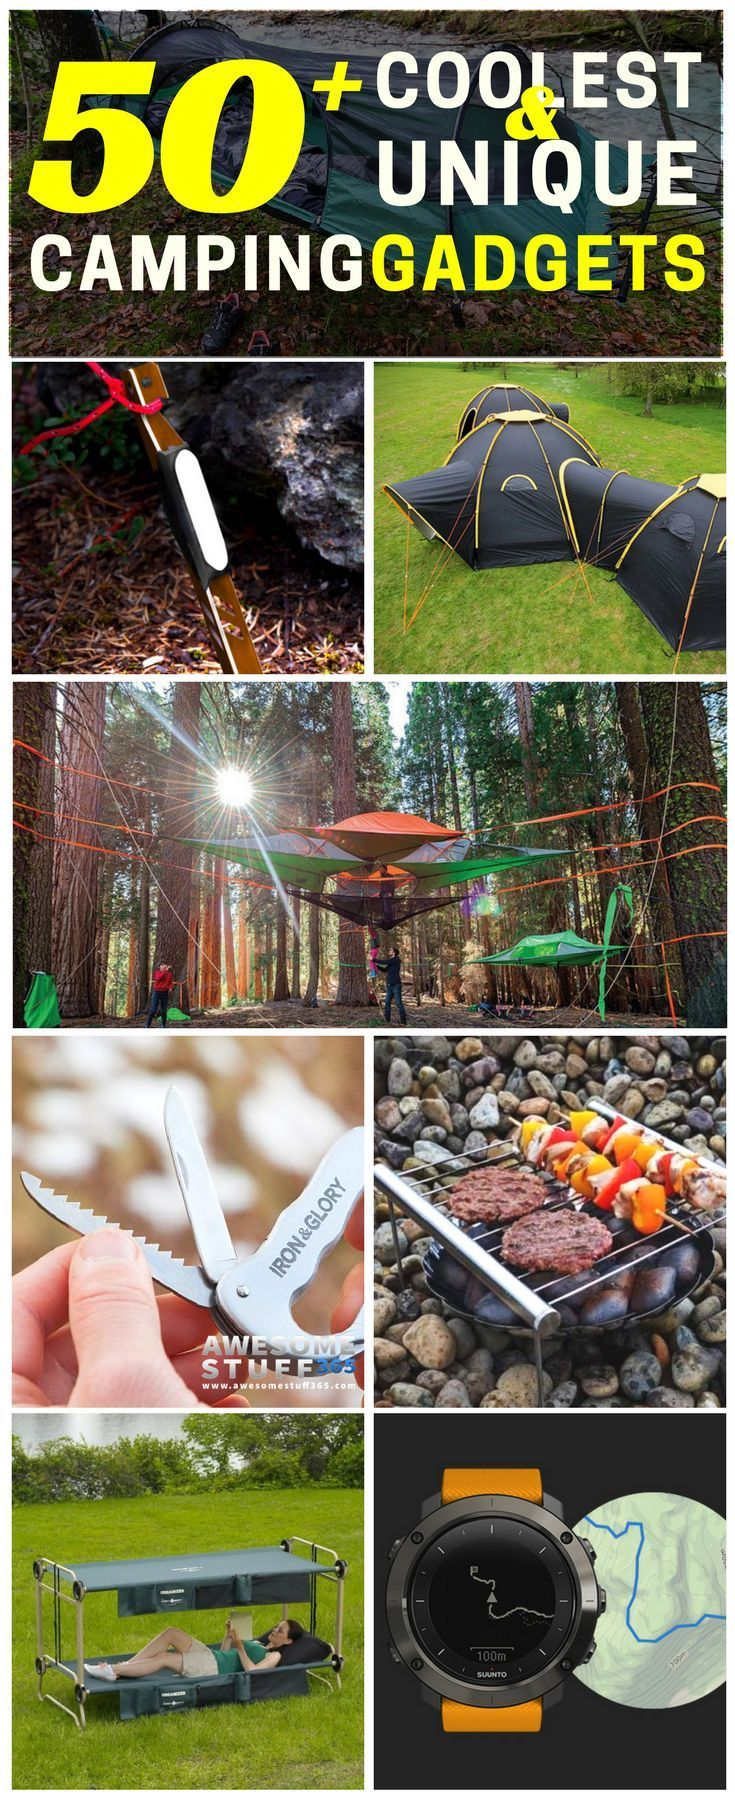 75+ Of The Coolest Camping Gadgets & Unique Products For Campers -  Take camping to the next level